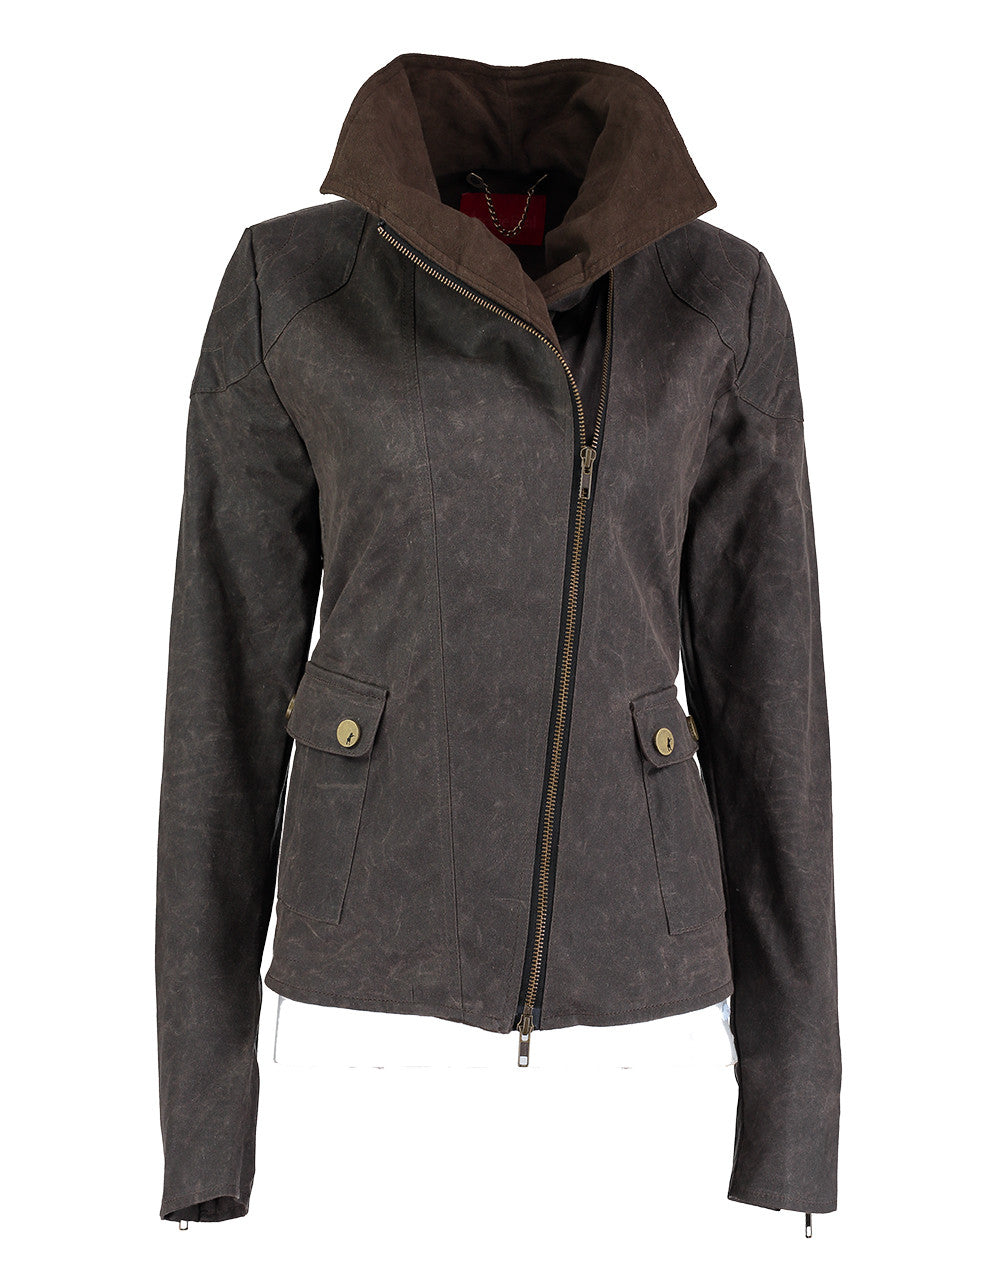 Archie Foal Women's Nea Wax Cotton Jacket in Brown